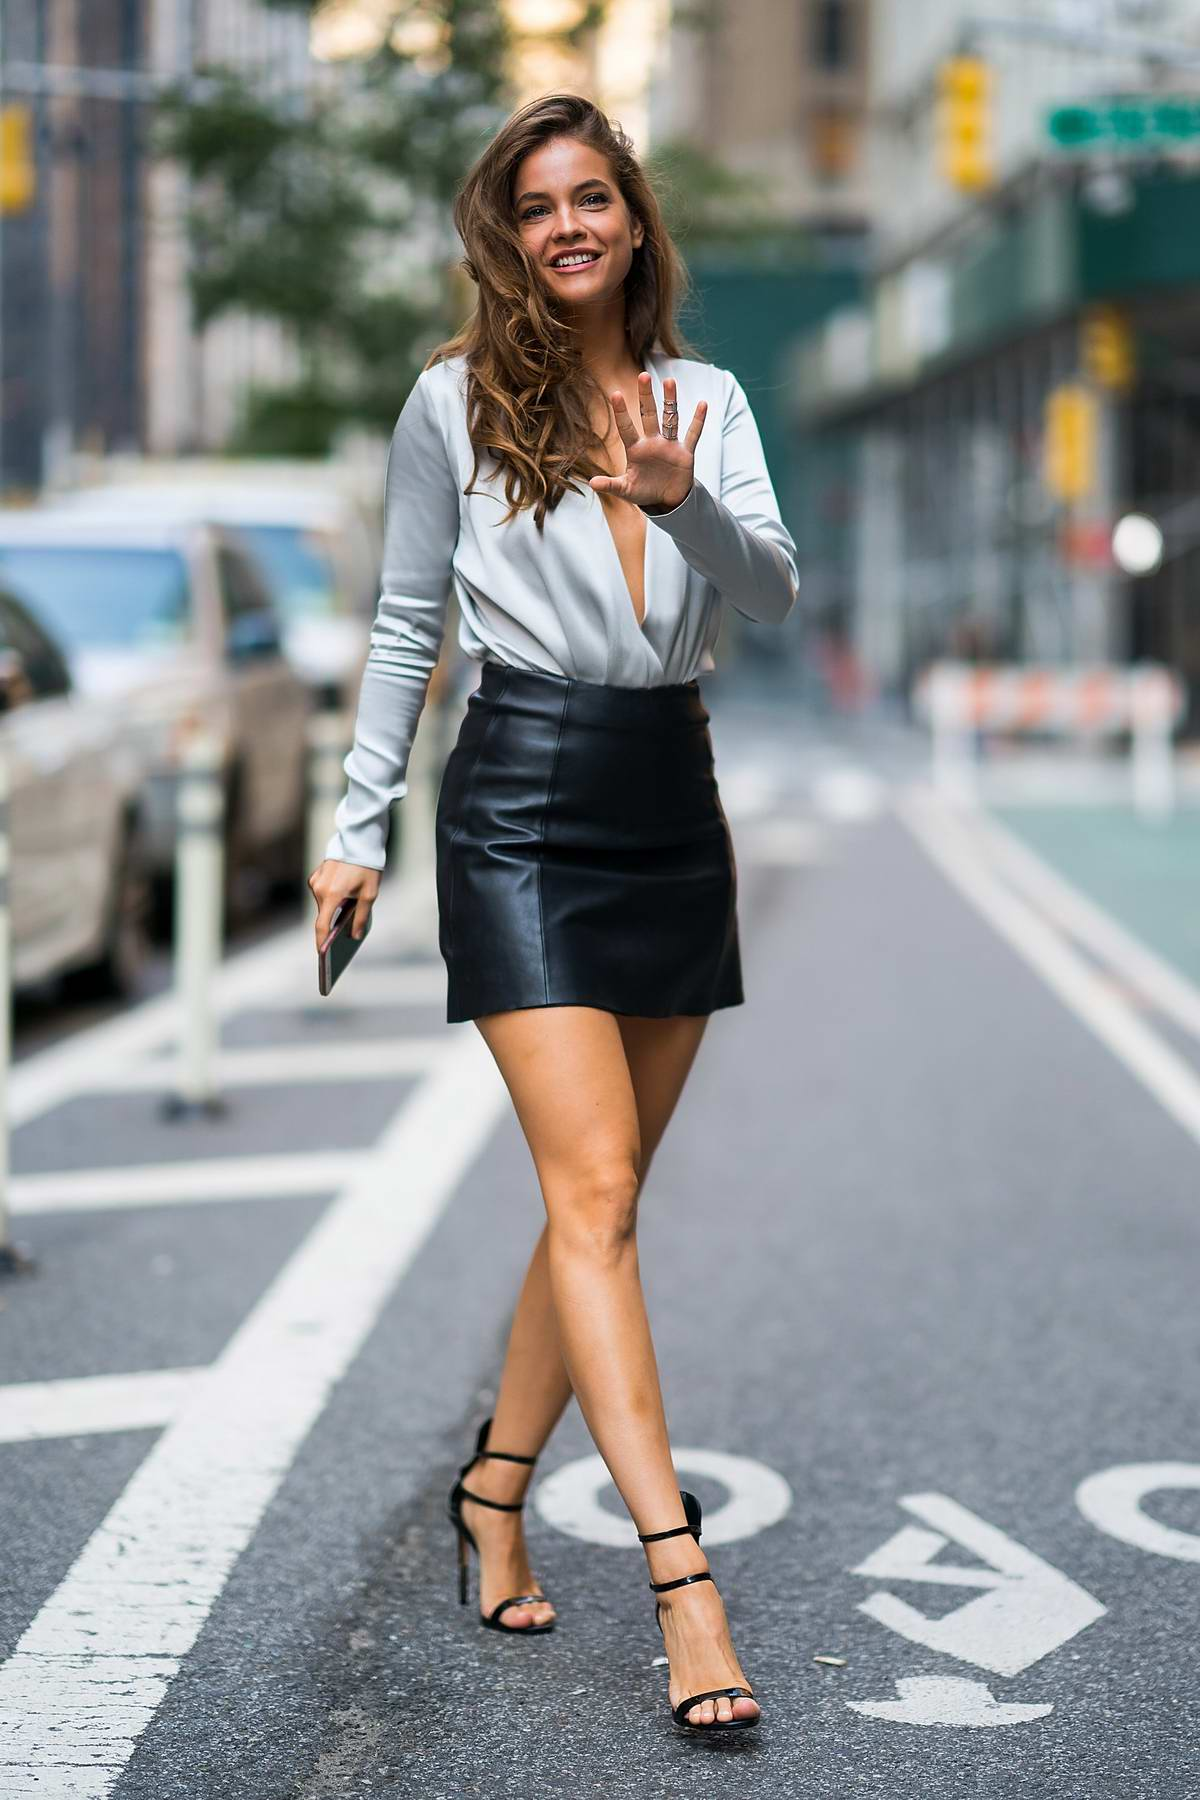 453929d71 Barbara Palvin seen wearing white silk top with black leather miniskirt  while visiting Victoria's Secret headquarters in New York City